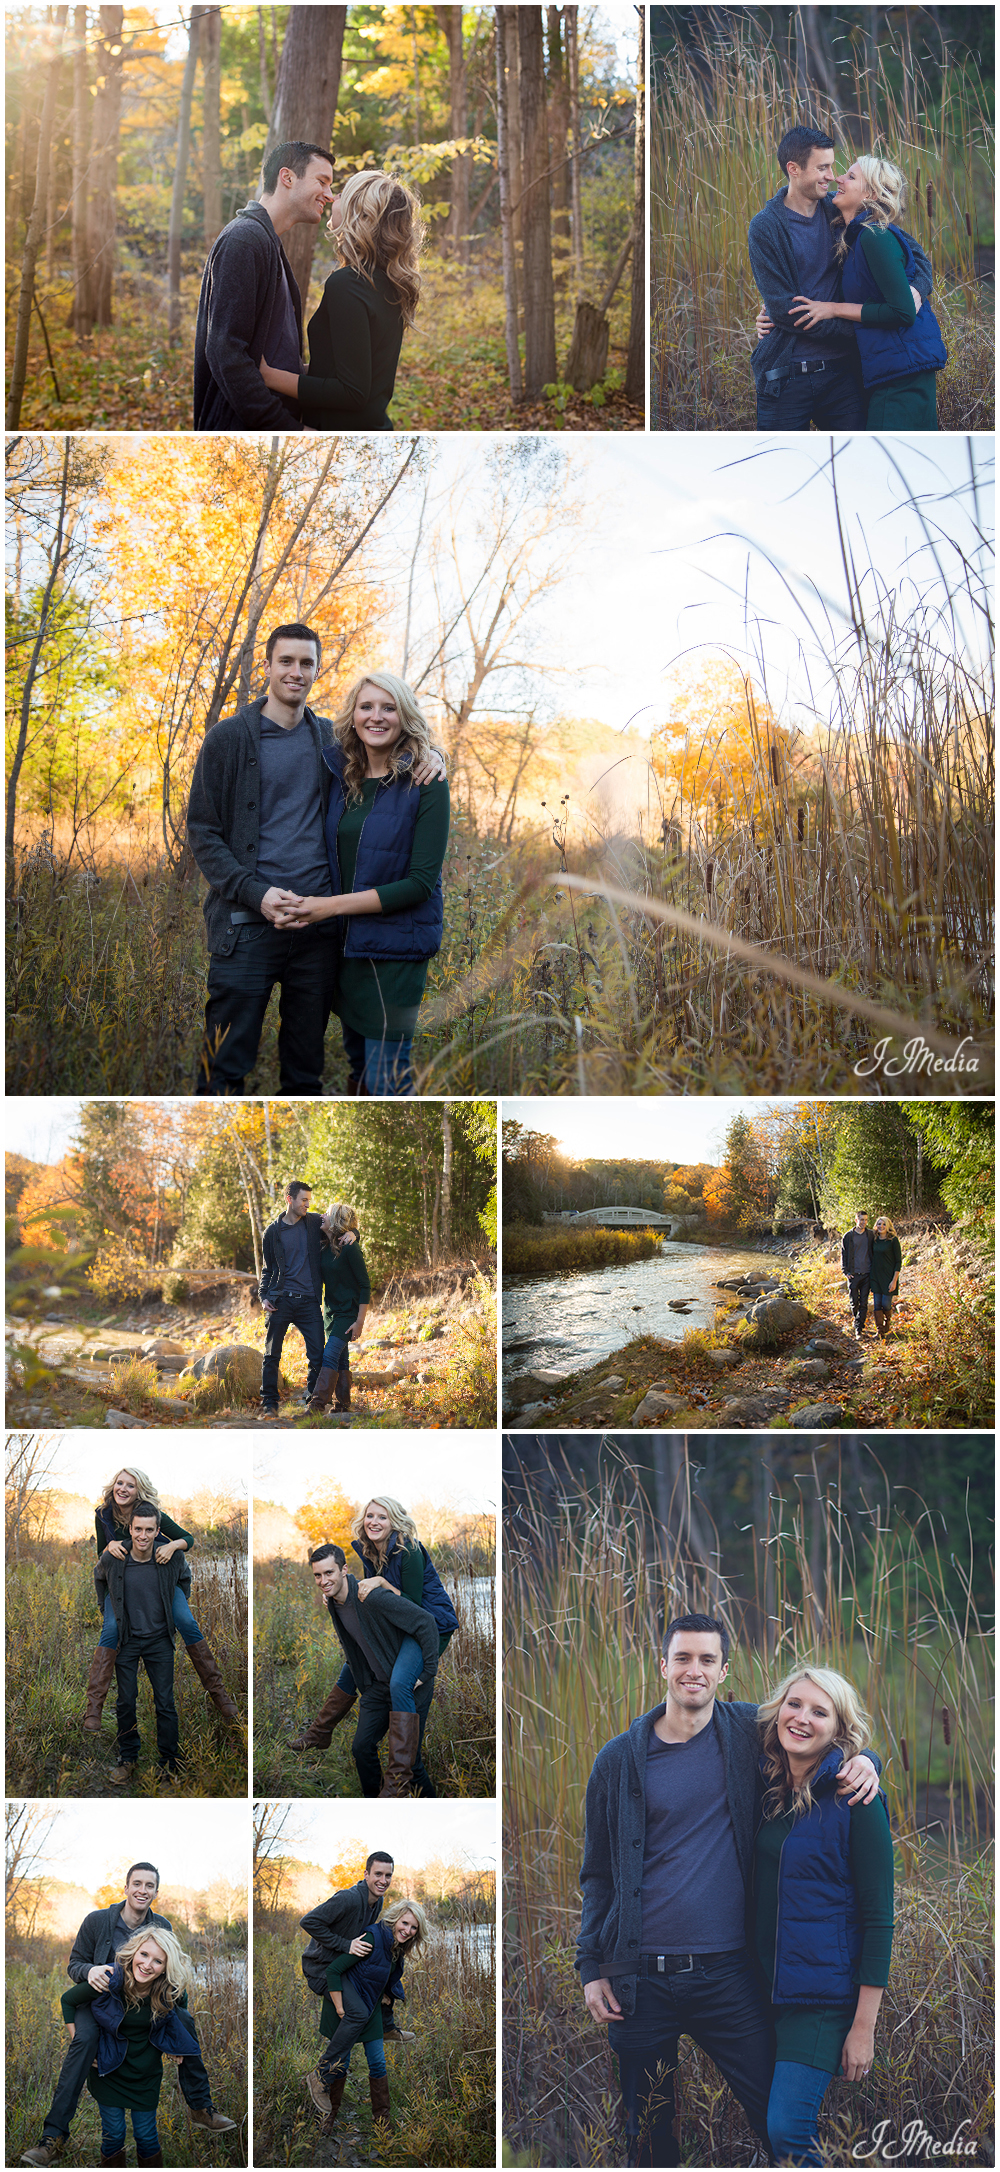 Pickering_Engagement_Photos_JJMedia-2